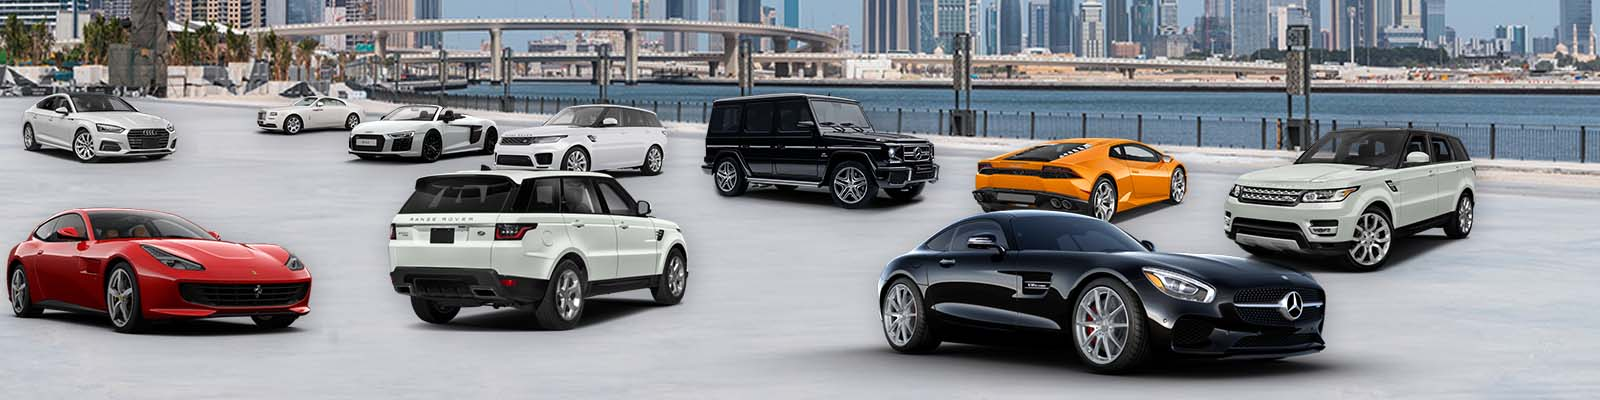 Rent A Car With Driver In Dubai Chauffer Services Chauffer